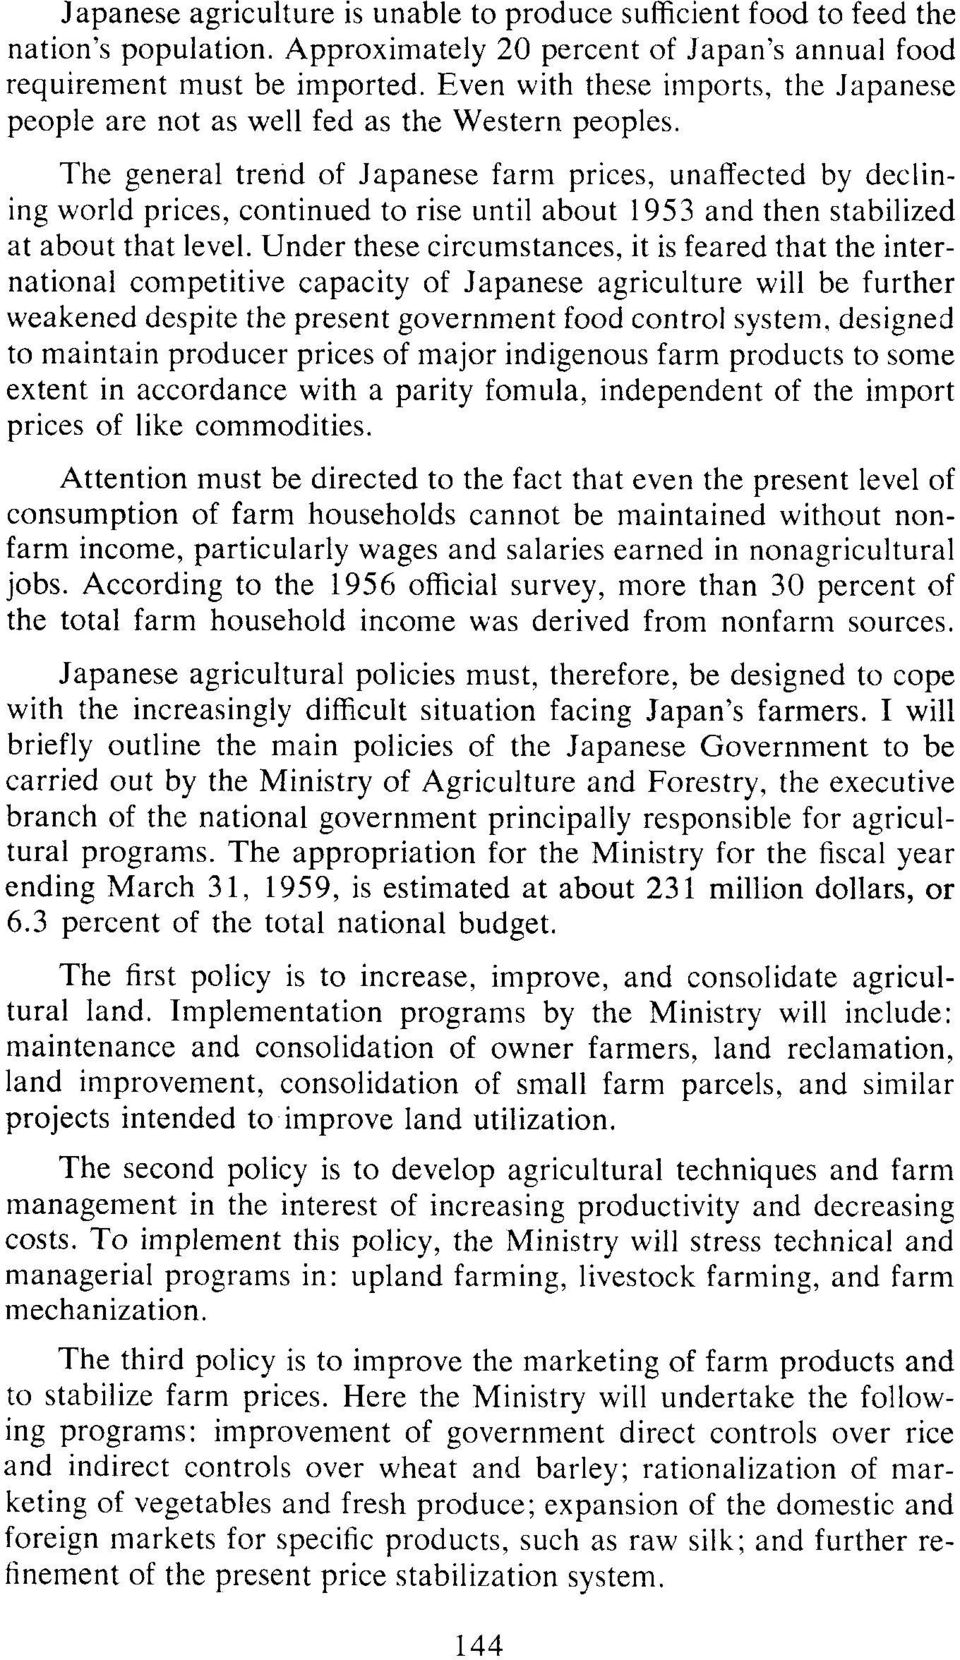 The general trend of Japanese farm prices, unaffected by declining world prices, continued to rise until about 1953 and then stabilized at about that level.